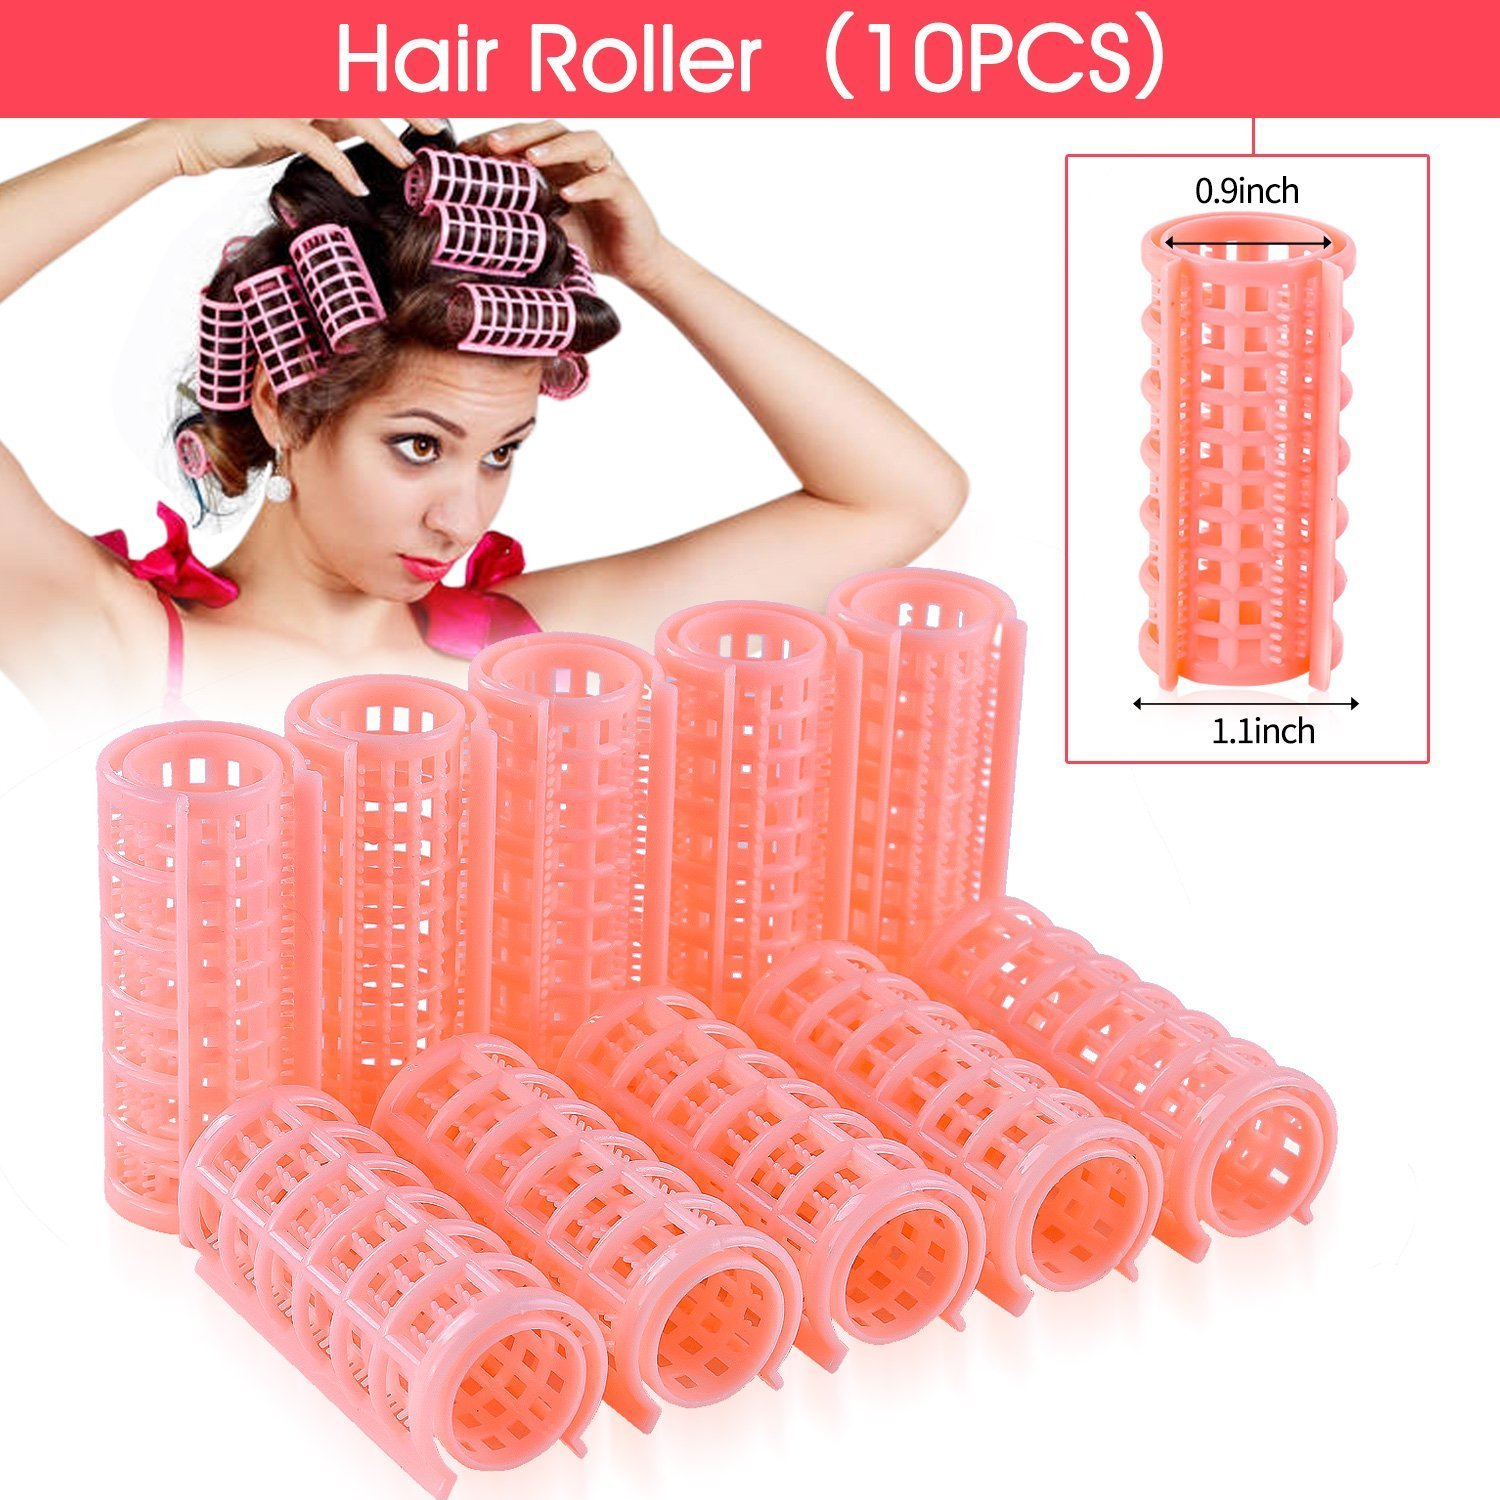 Yousha 10Pcs DIY Home Small Plastic Hair Roller Pro Salon Hairdressing Curlers Clips for Women Ladies (Pink)